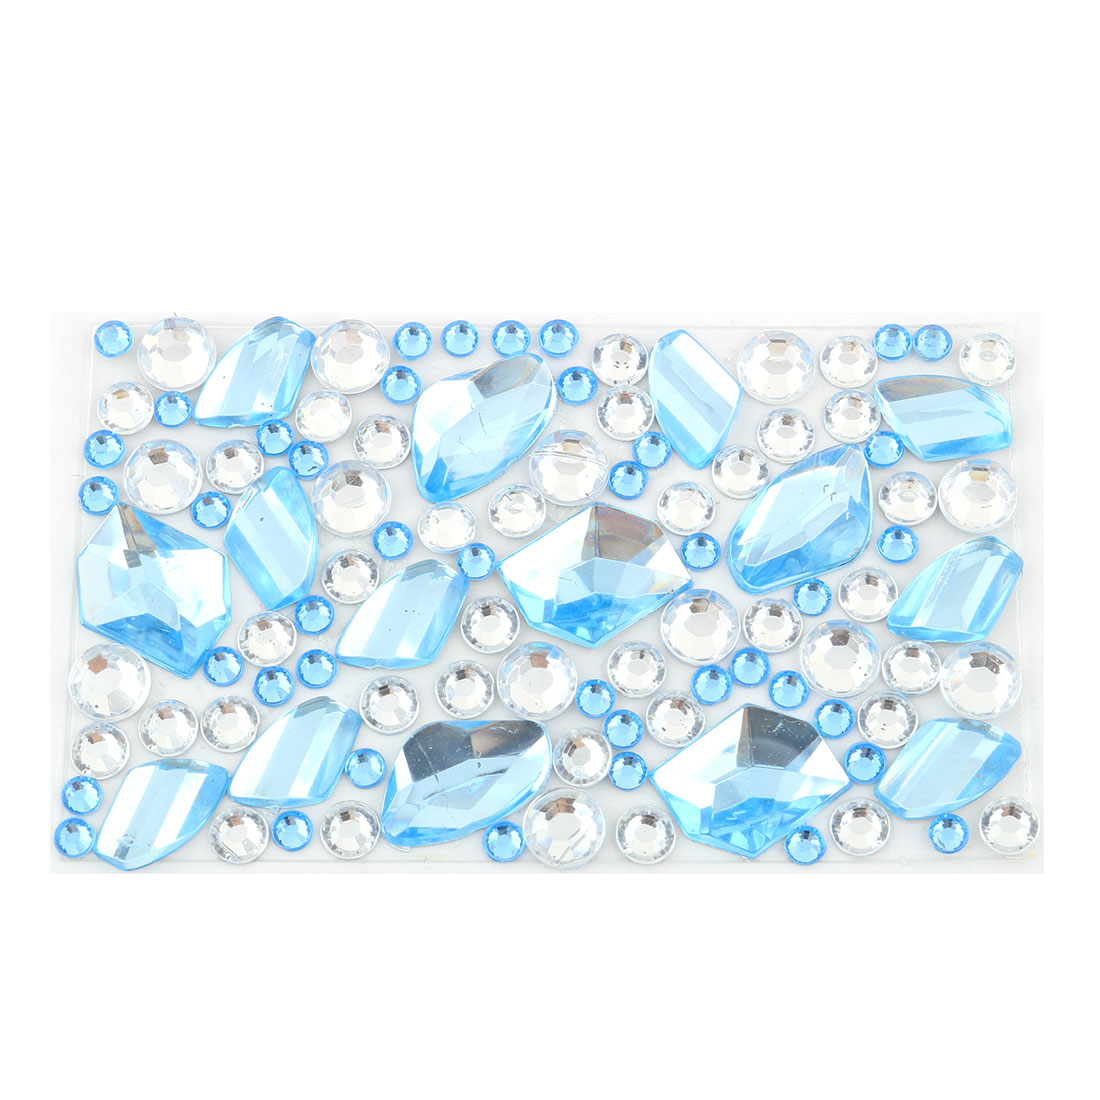 Faux Rhinestone Decor DIY Mobile Cell Phone Self Adhesive Sticker Sheet Blue